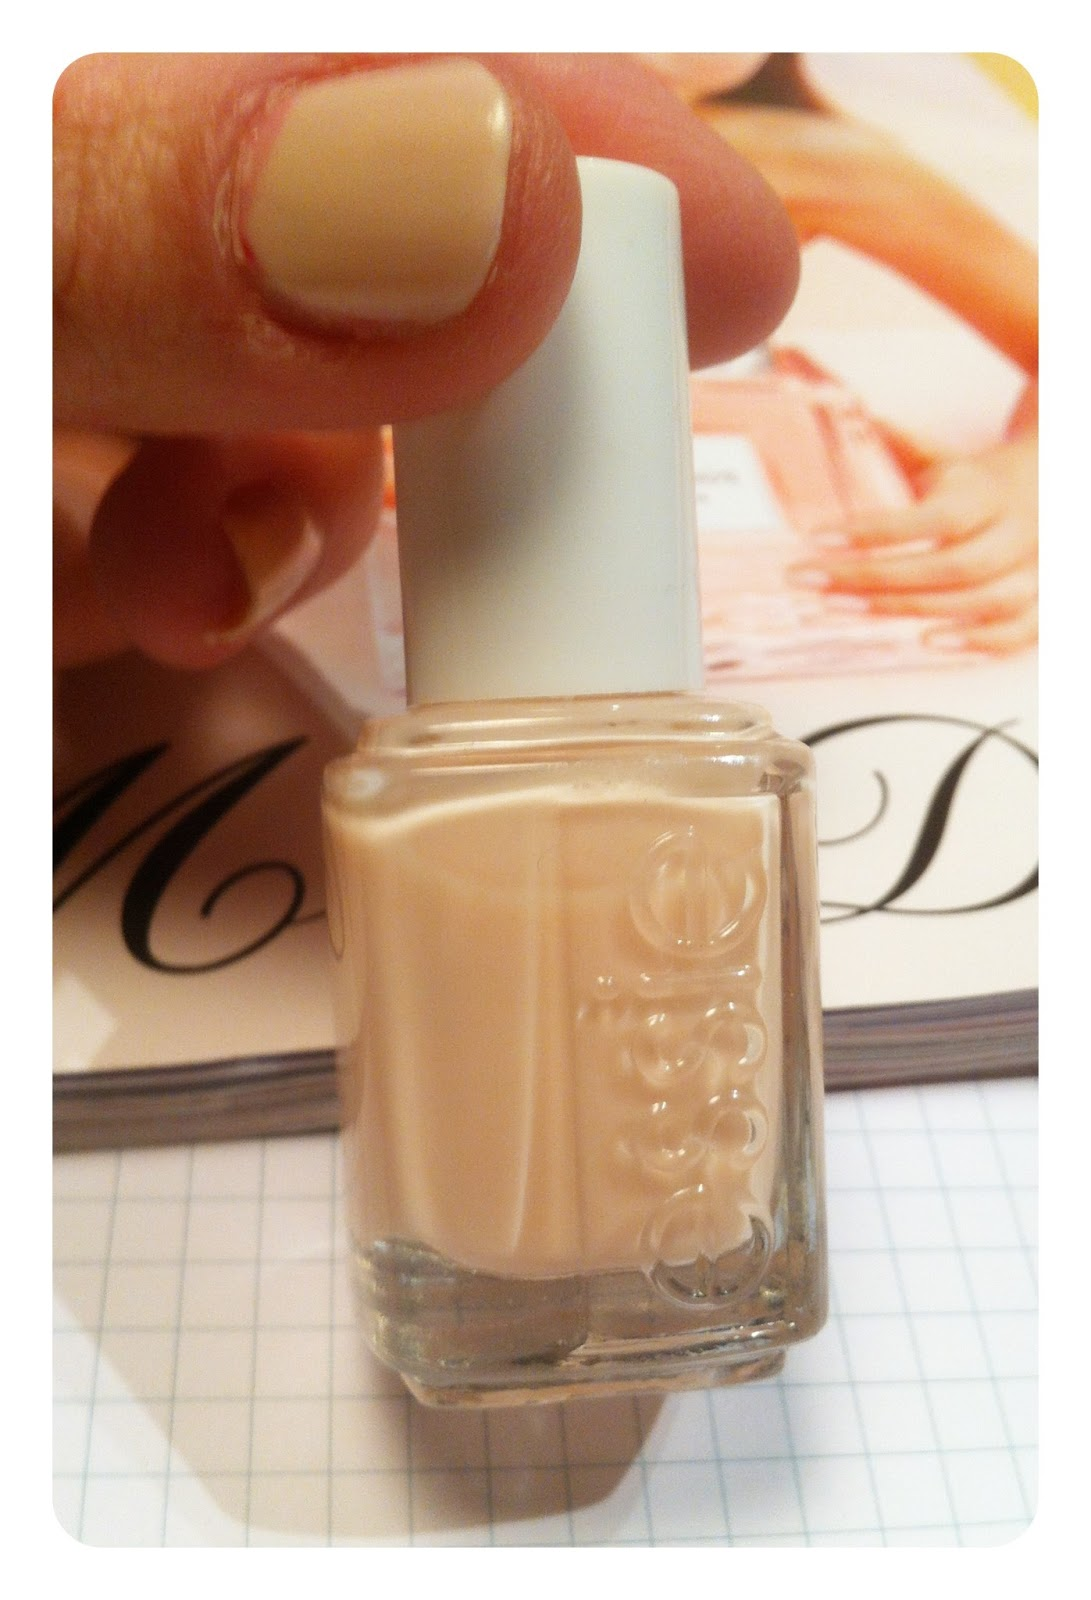 Miss Feline - the Beauty Blog: Essie Nail Polish in Spaghetti Strap ...